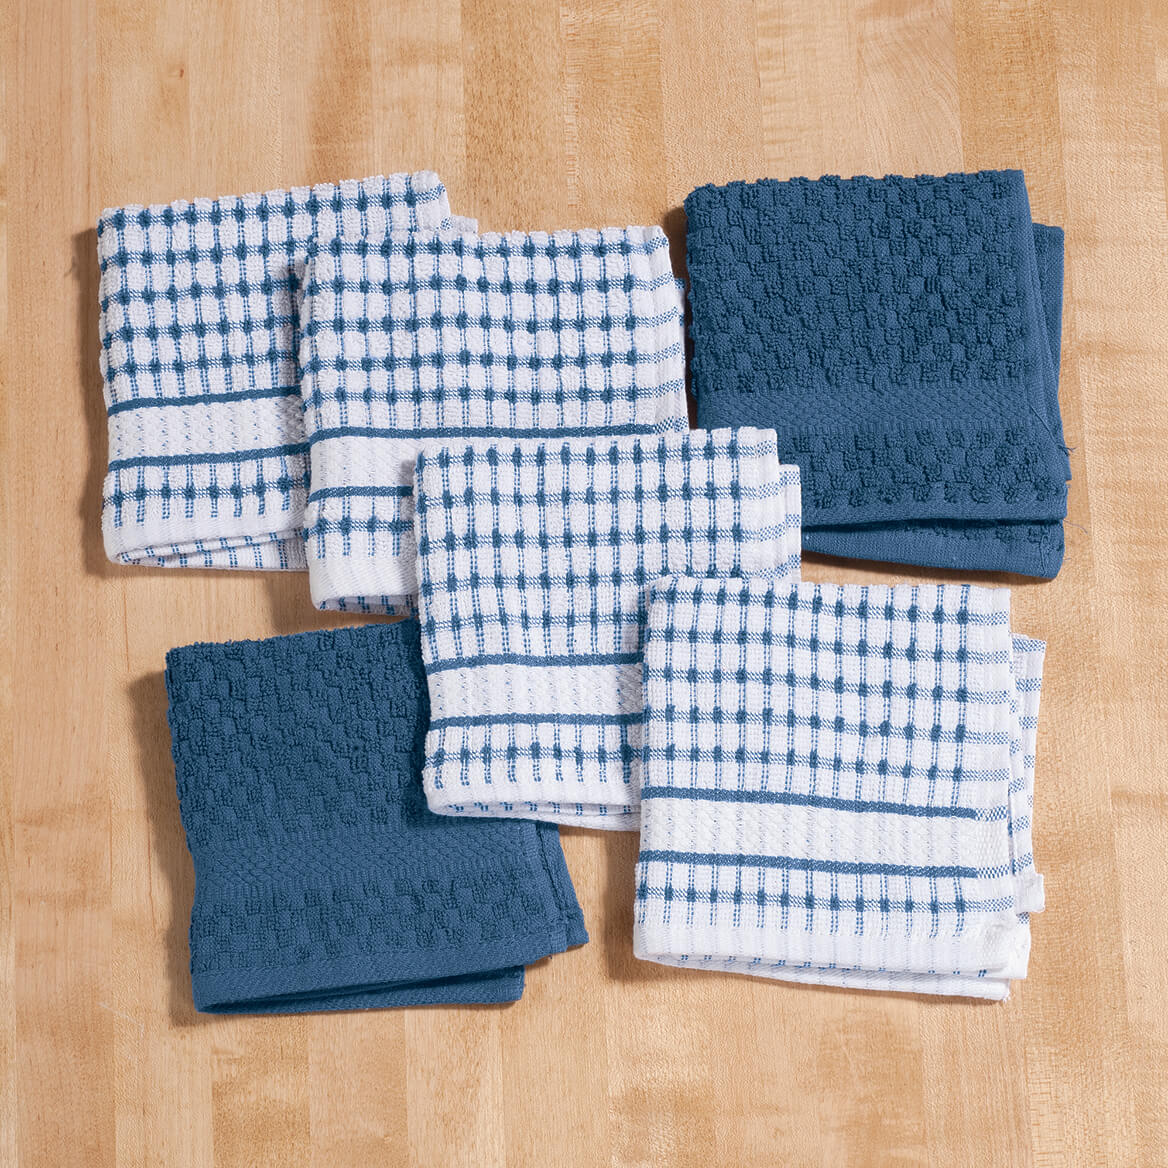 terry kitchen towels tables sets dish cloths set of 6 cotton miles kimball